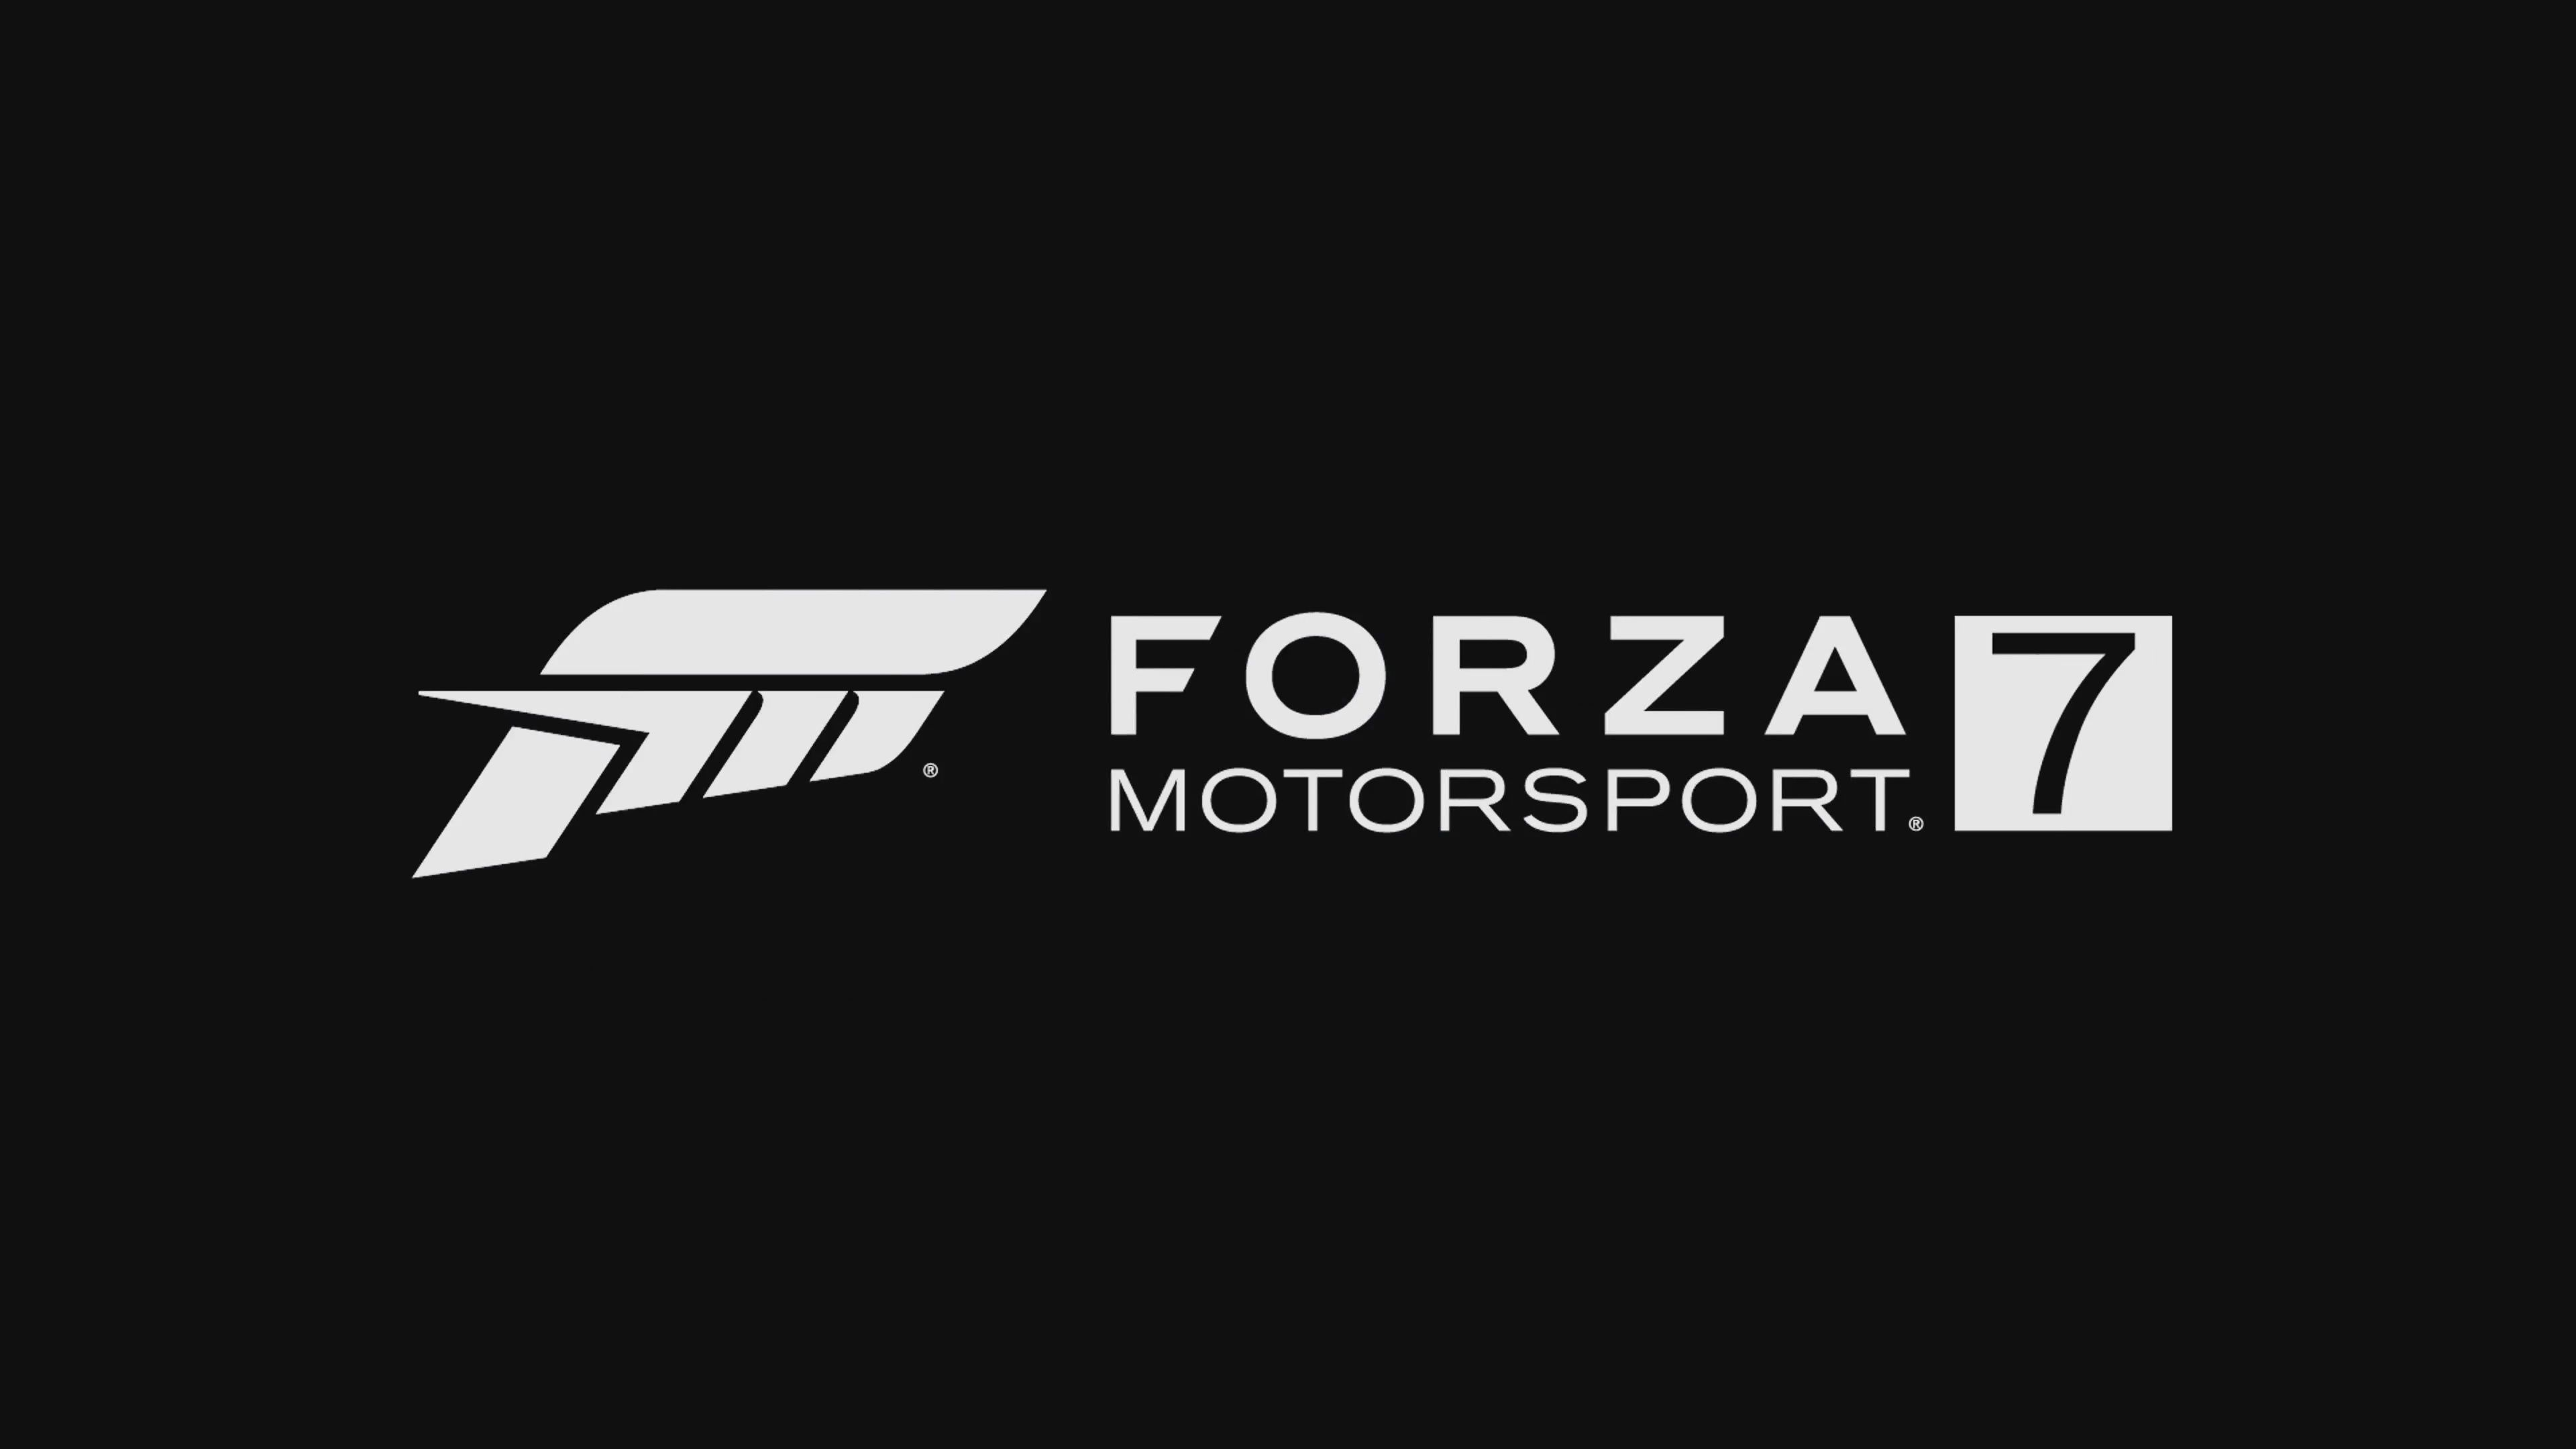 forza motorsport 7 wallpapers backgrounds. Black Bedroom Furniture Sets. Home Design Ideas